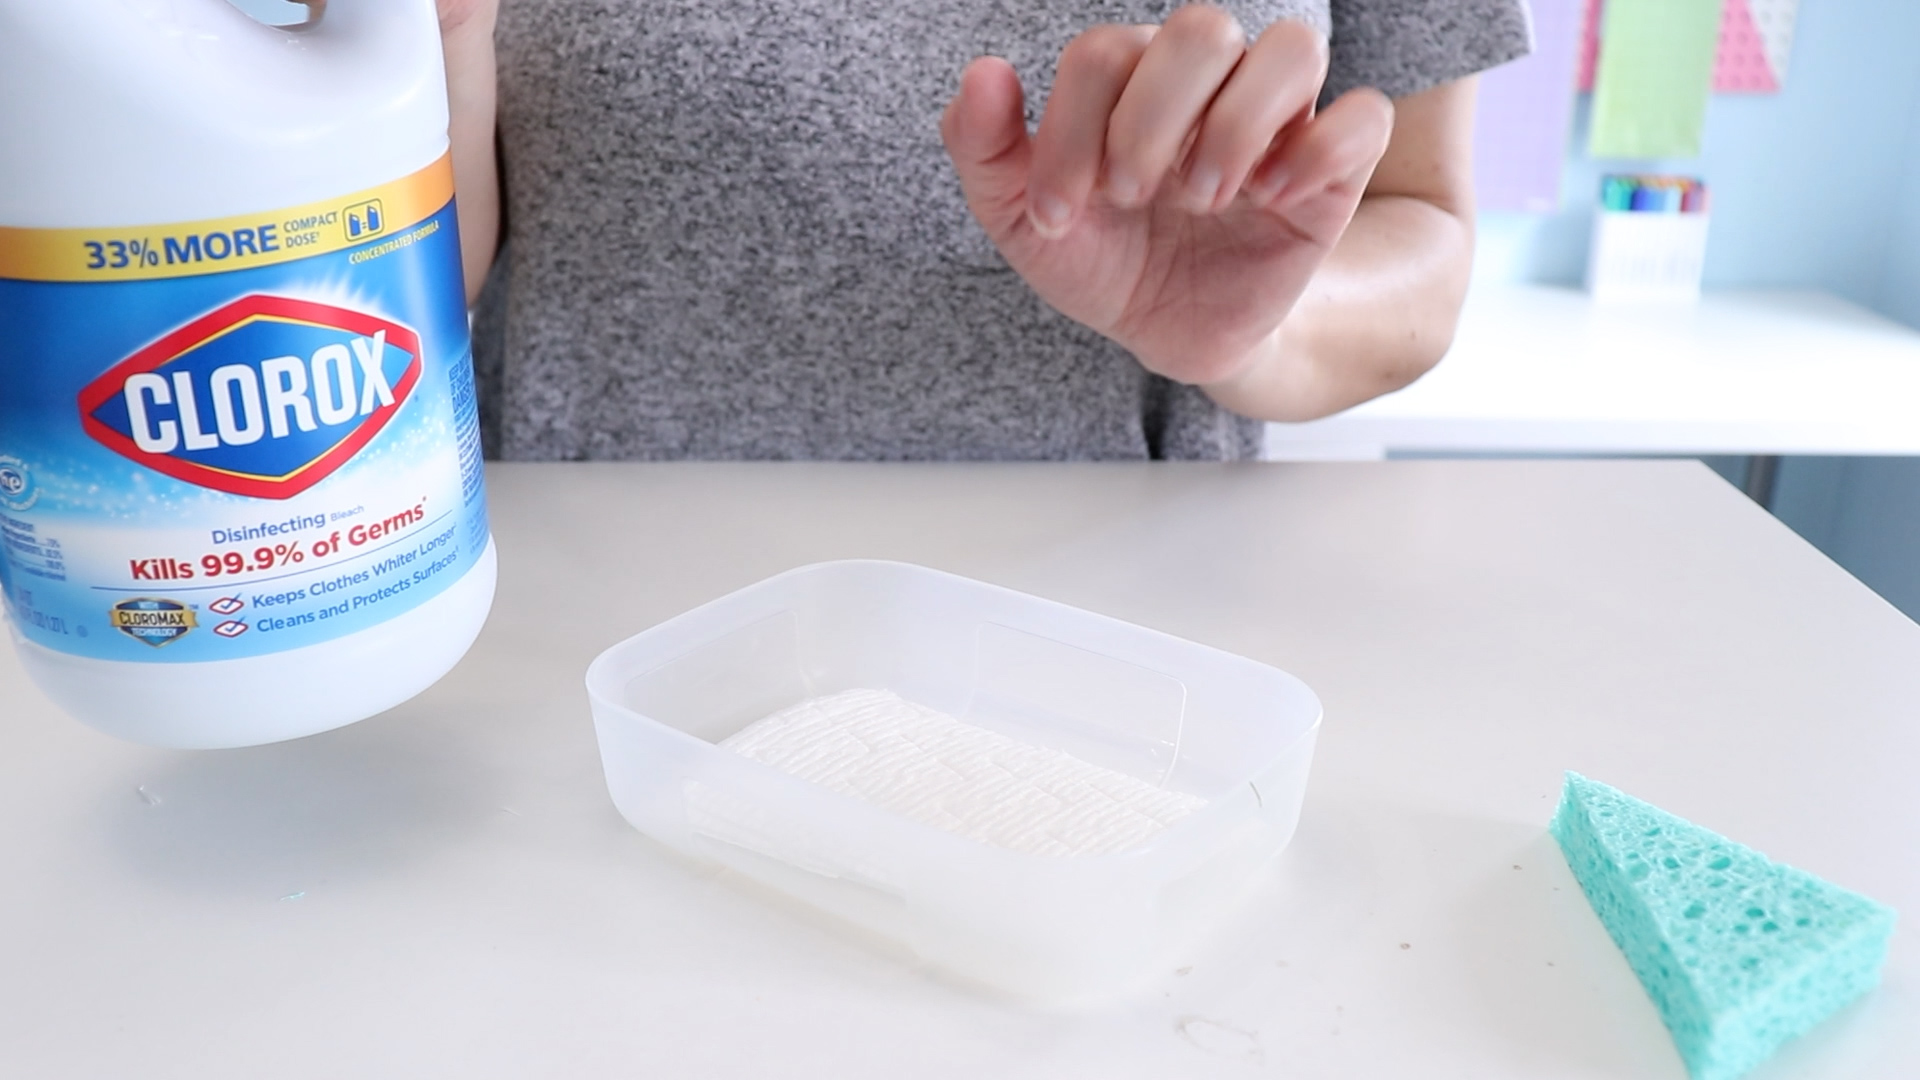 bleach in container